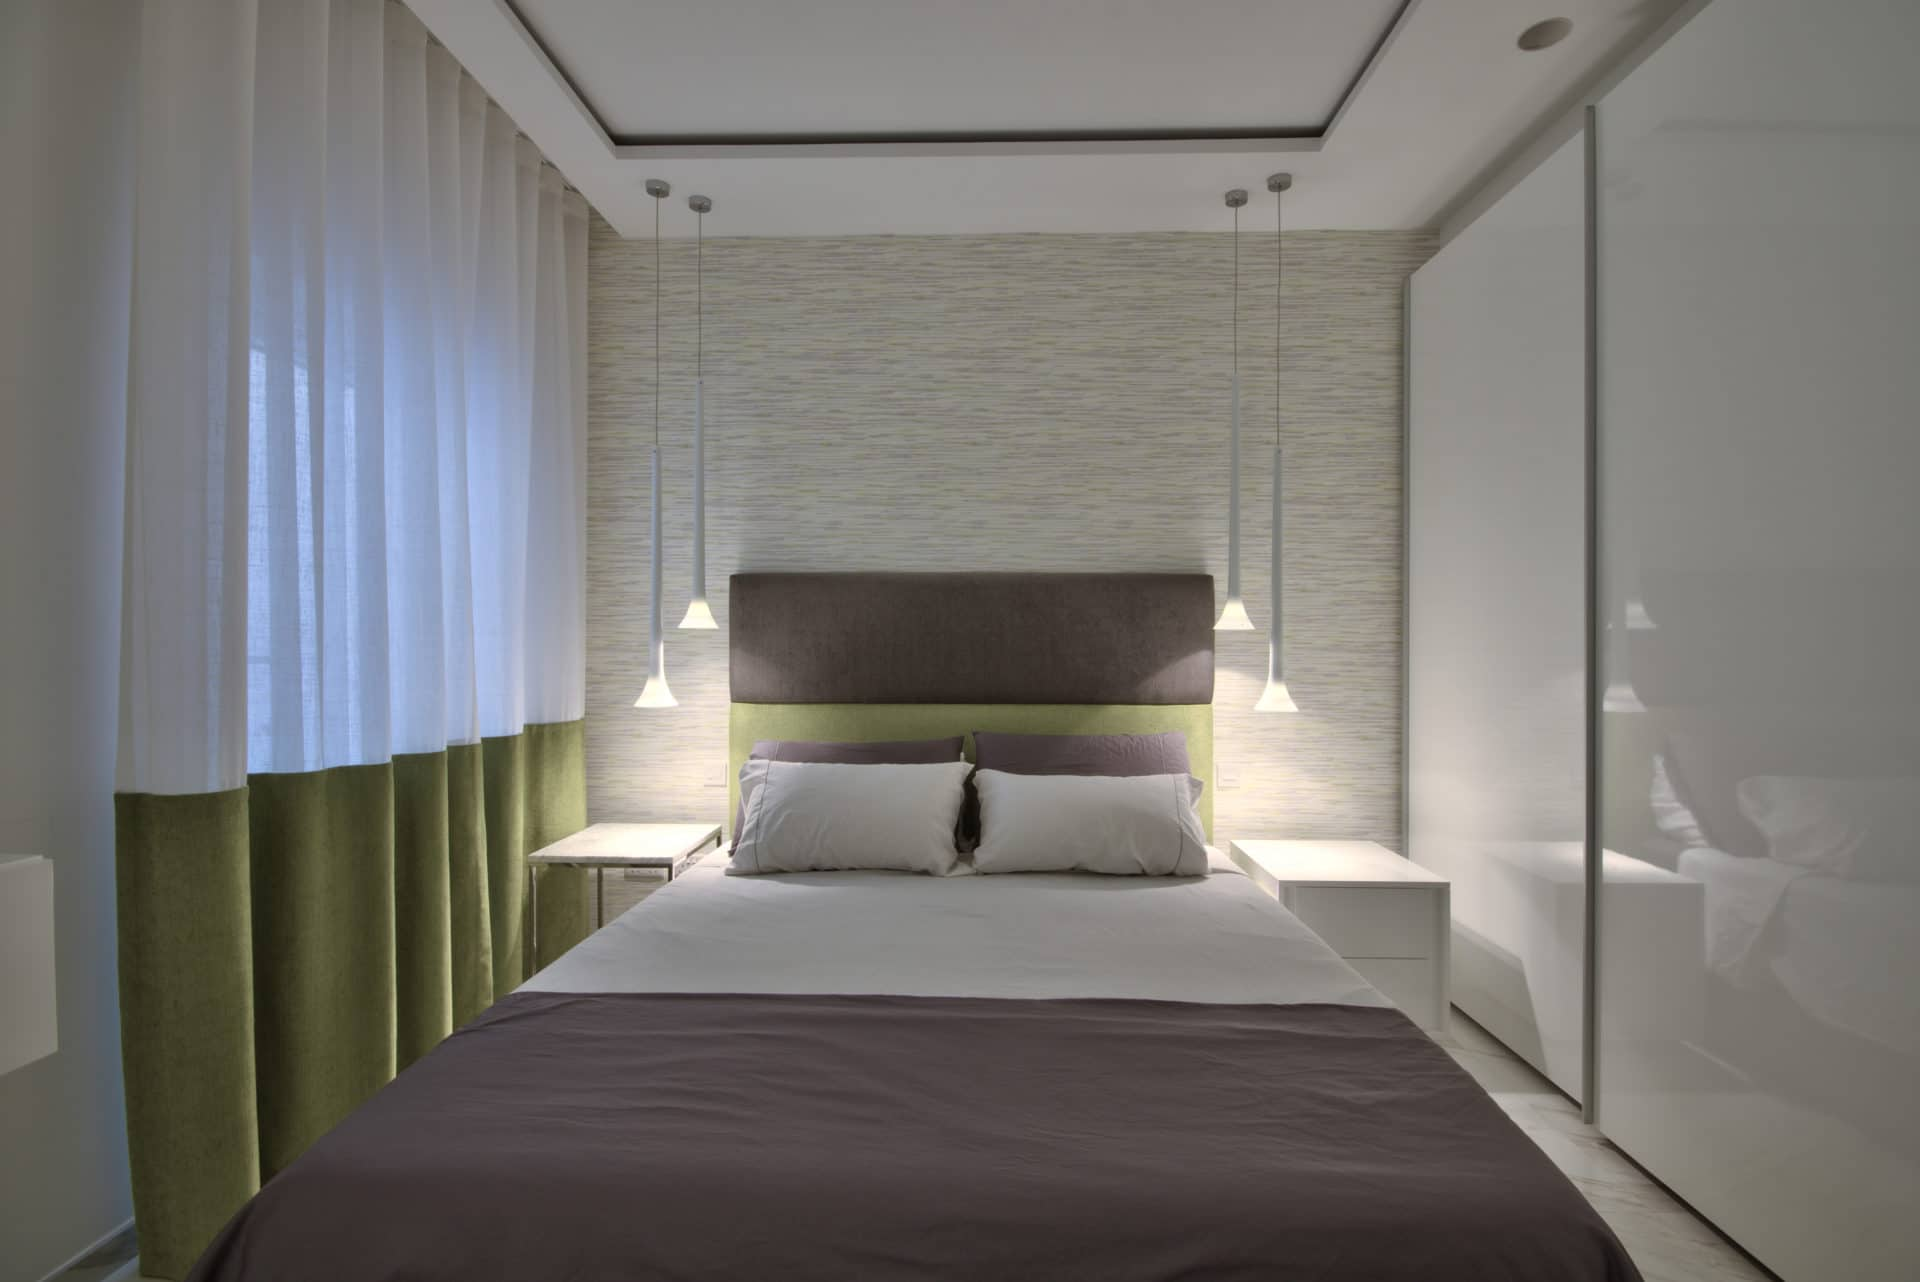 Main Bedroom – bedding, lighting, curtains, wallpaper feature